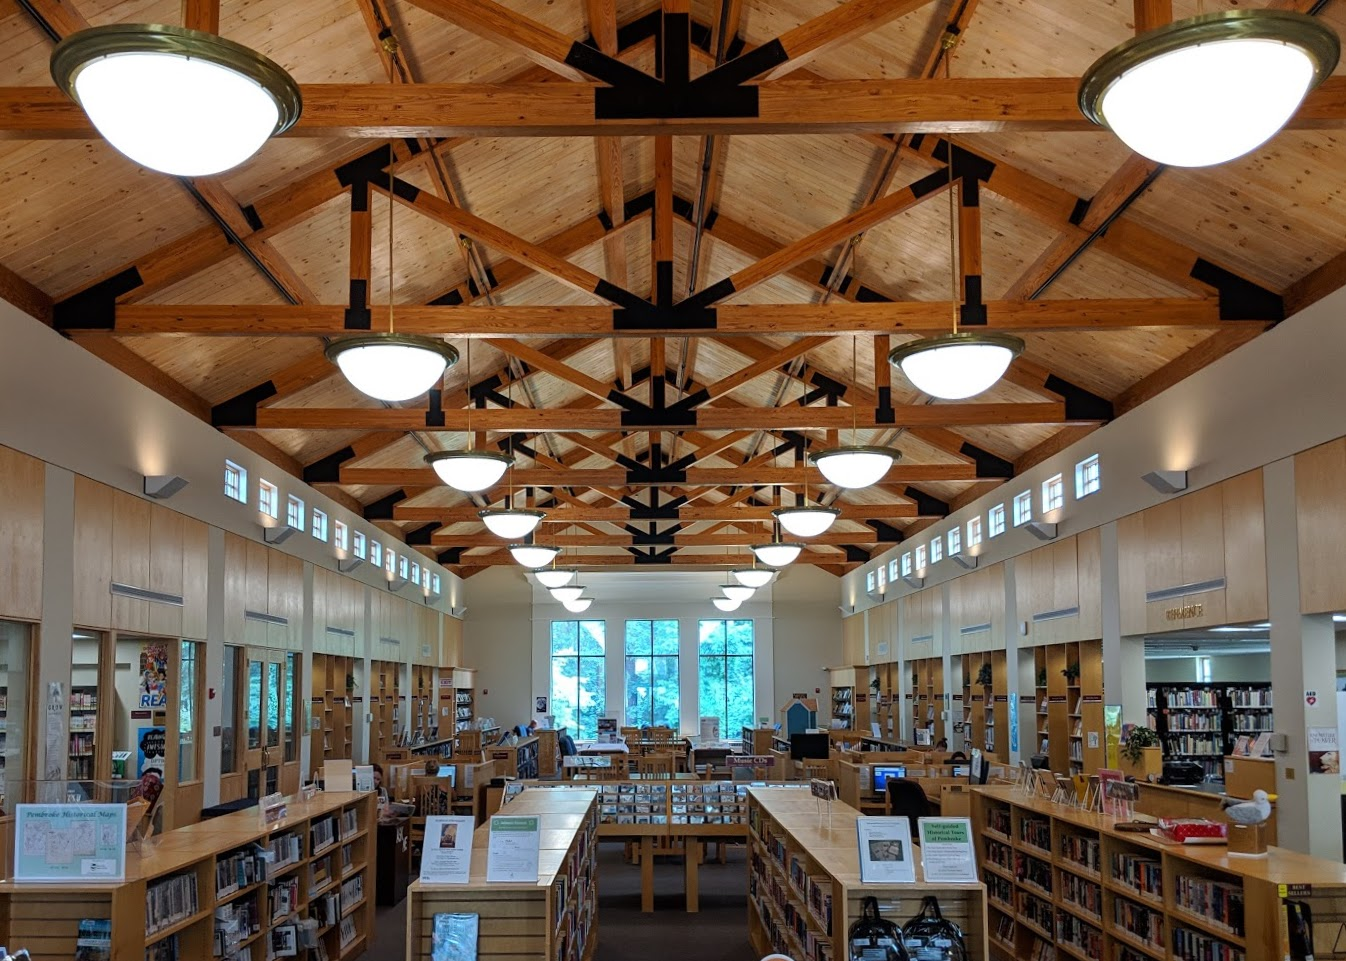 The stylish interior of the Pembroke Library.